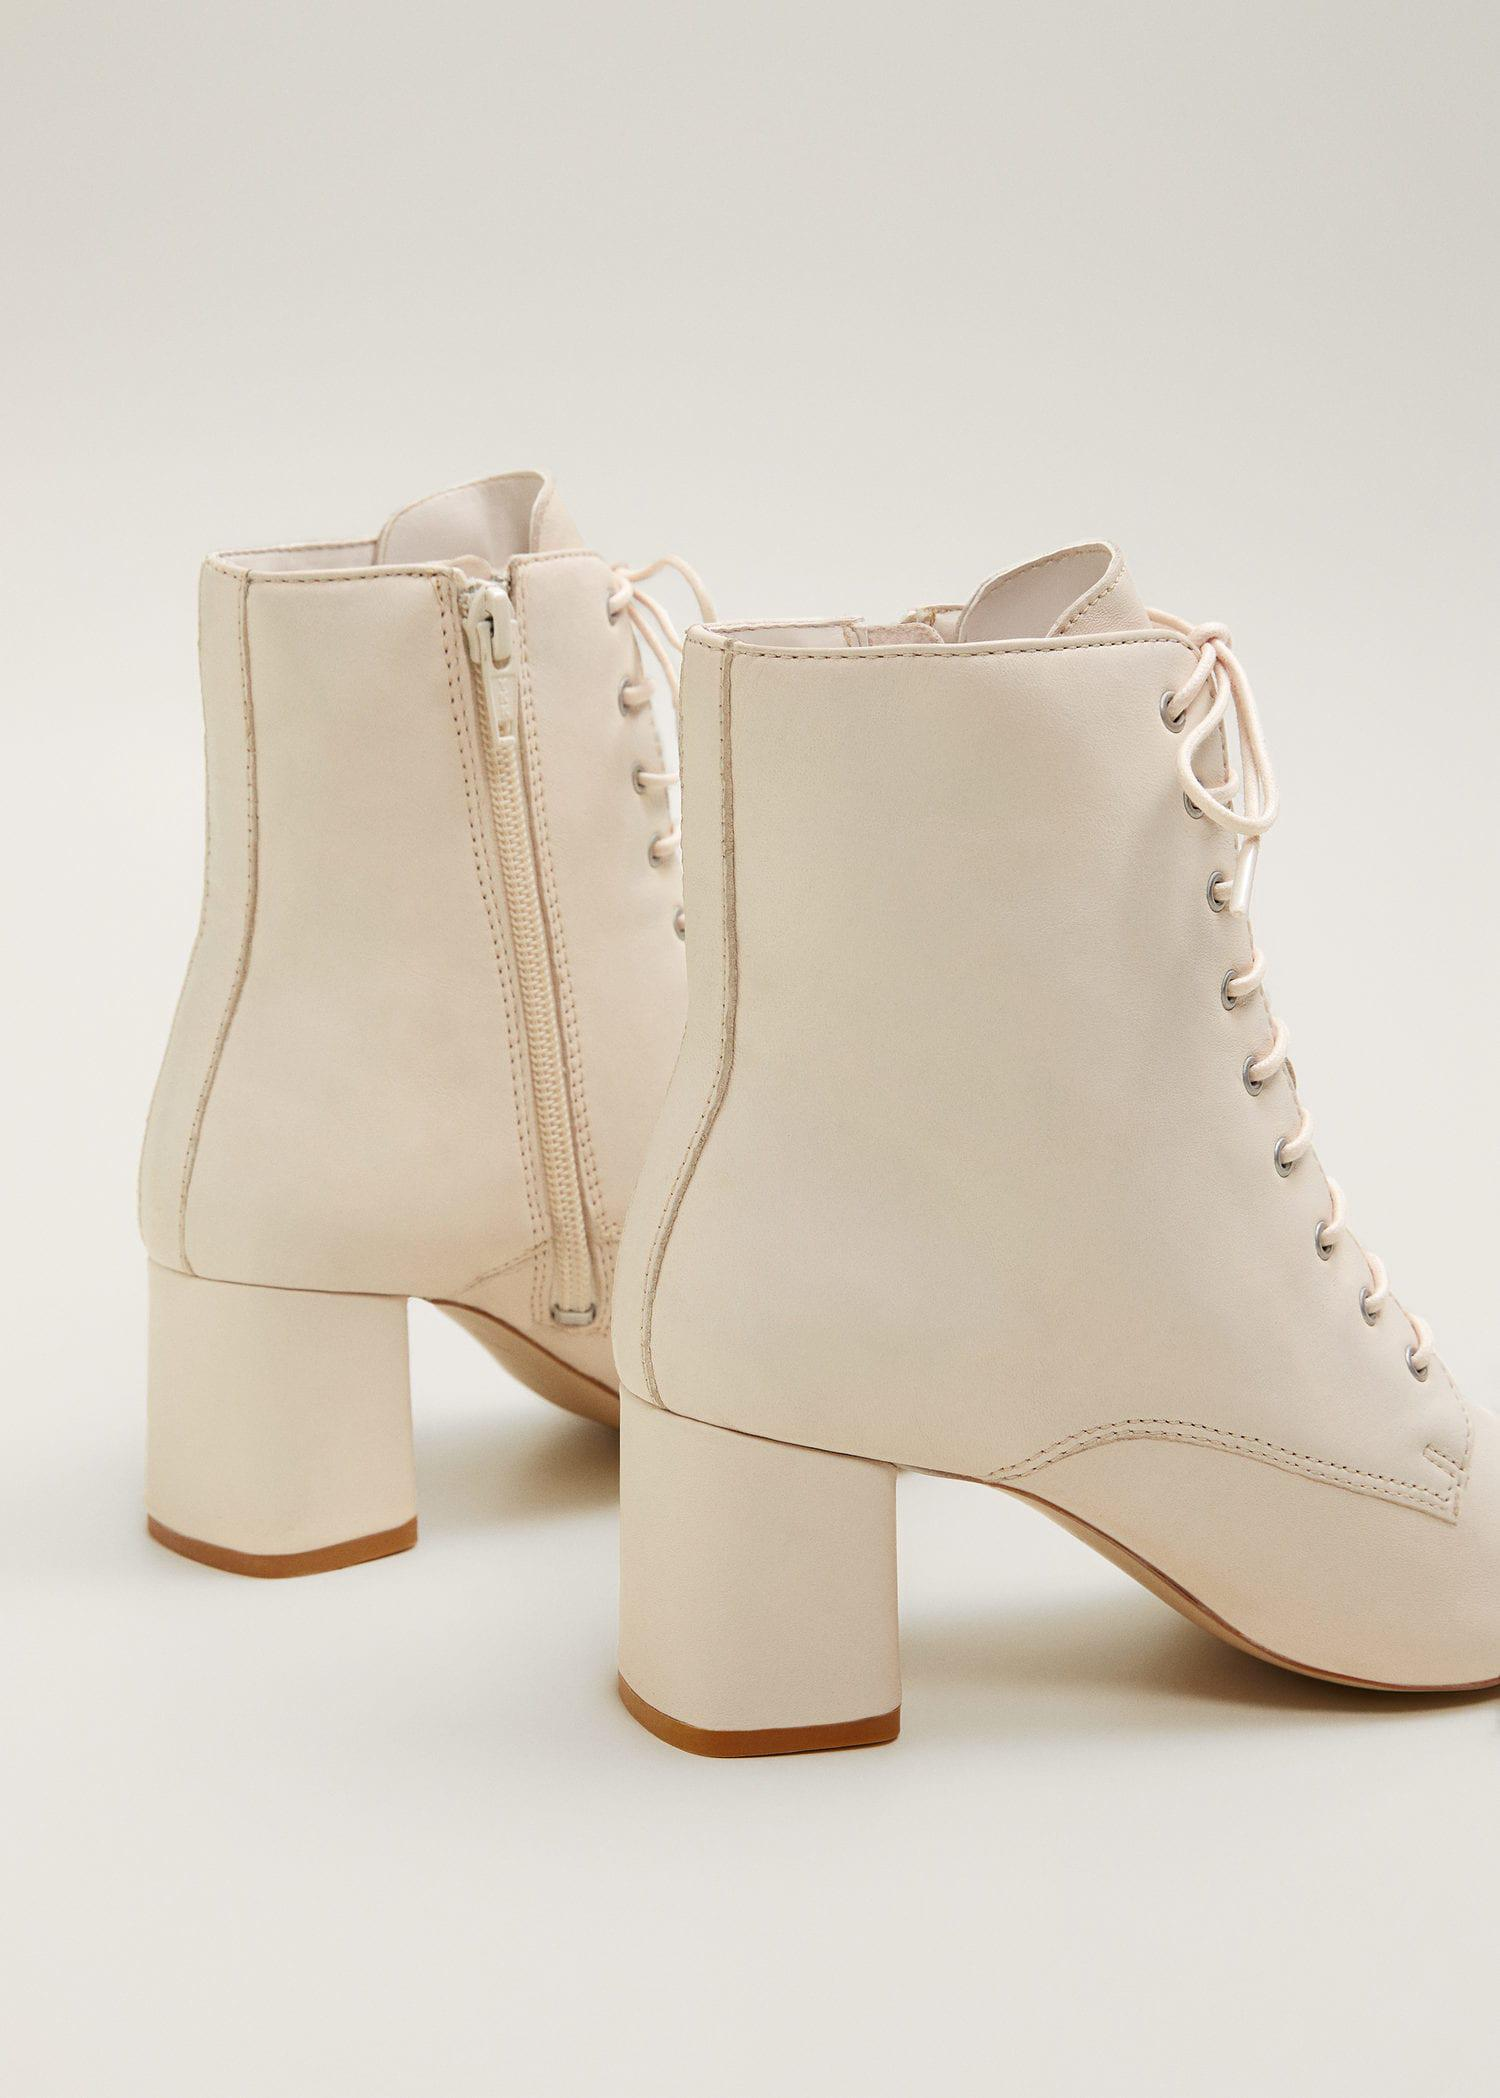 Mango Lace-up Leather Boots in Vanilla